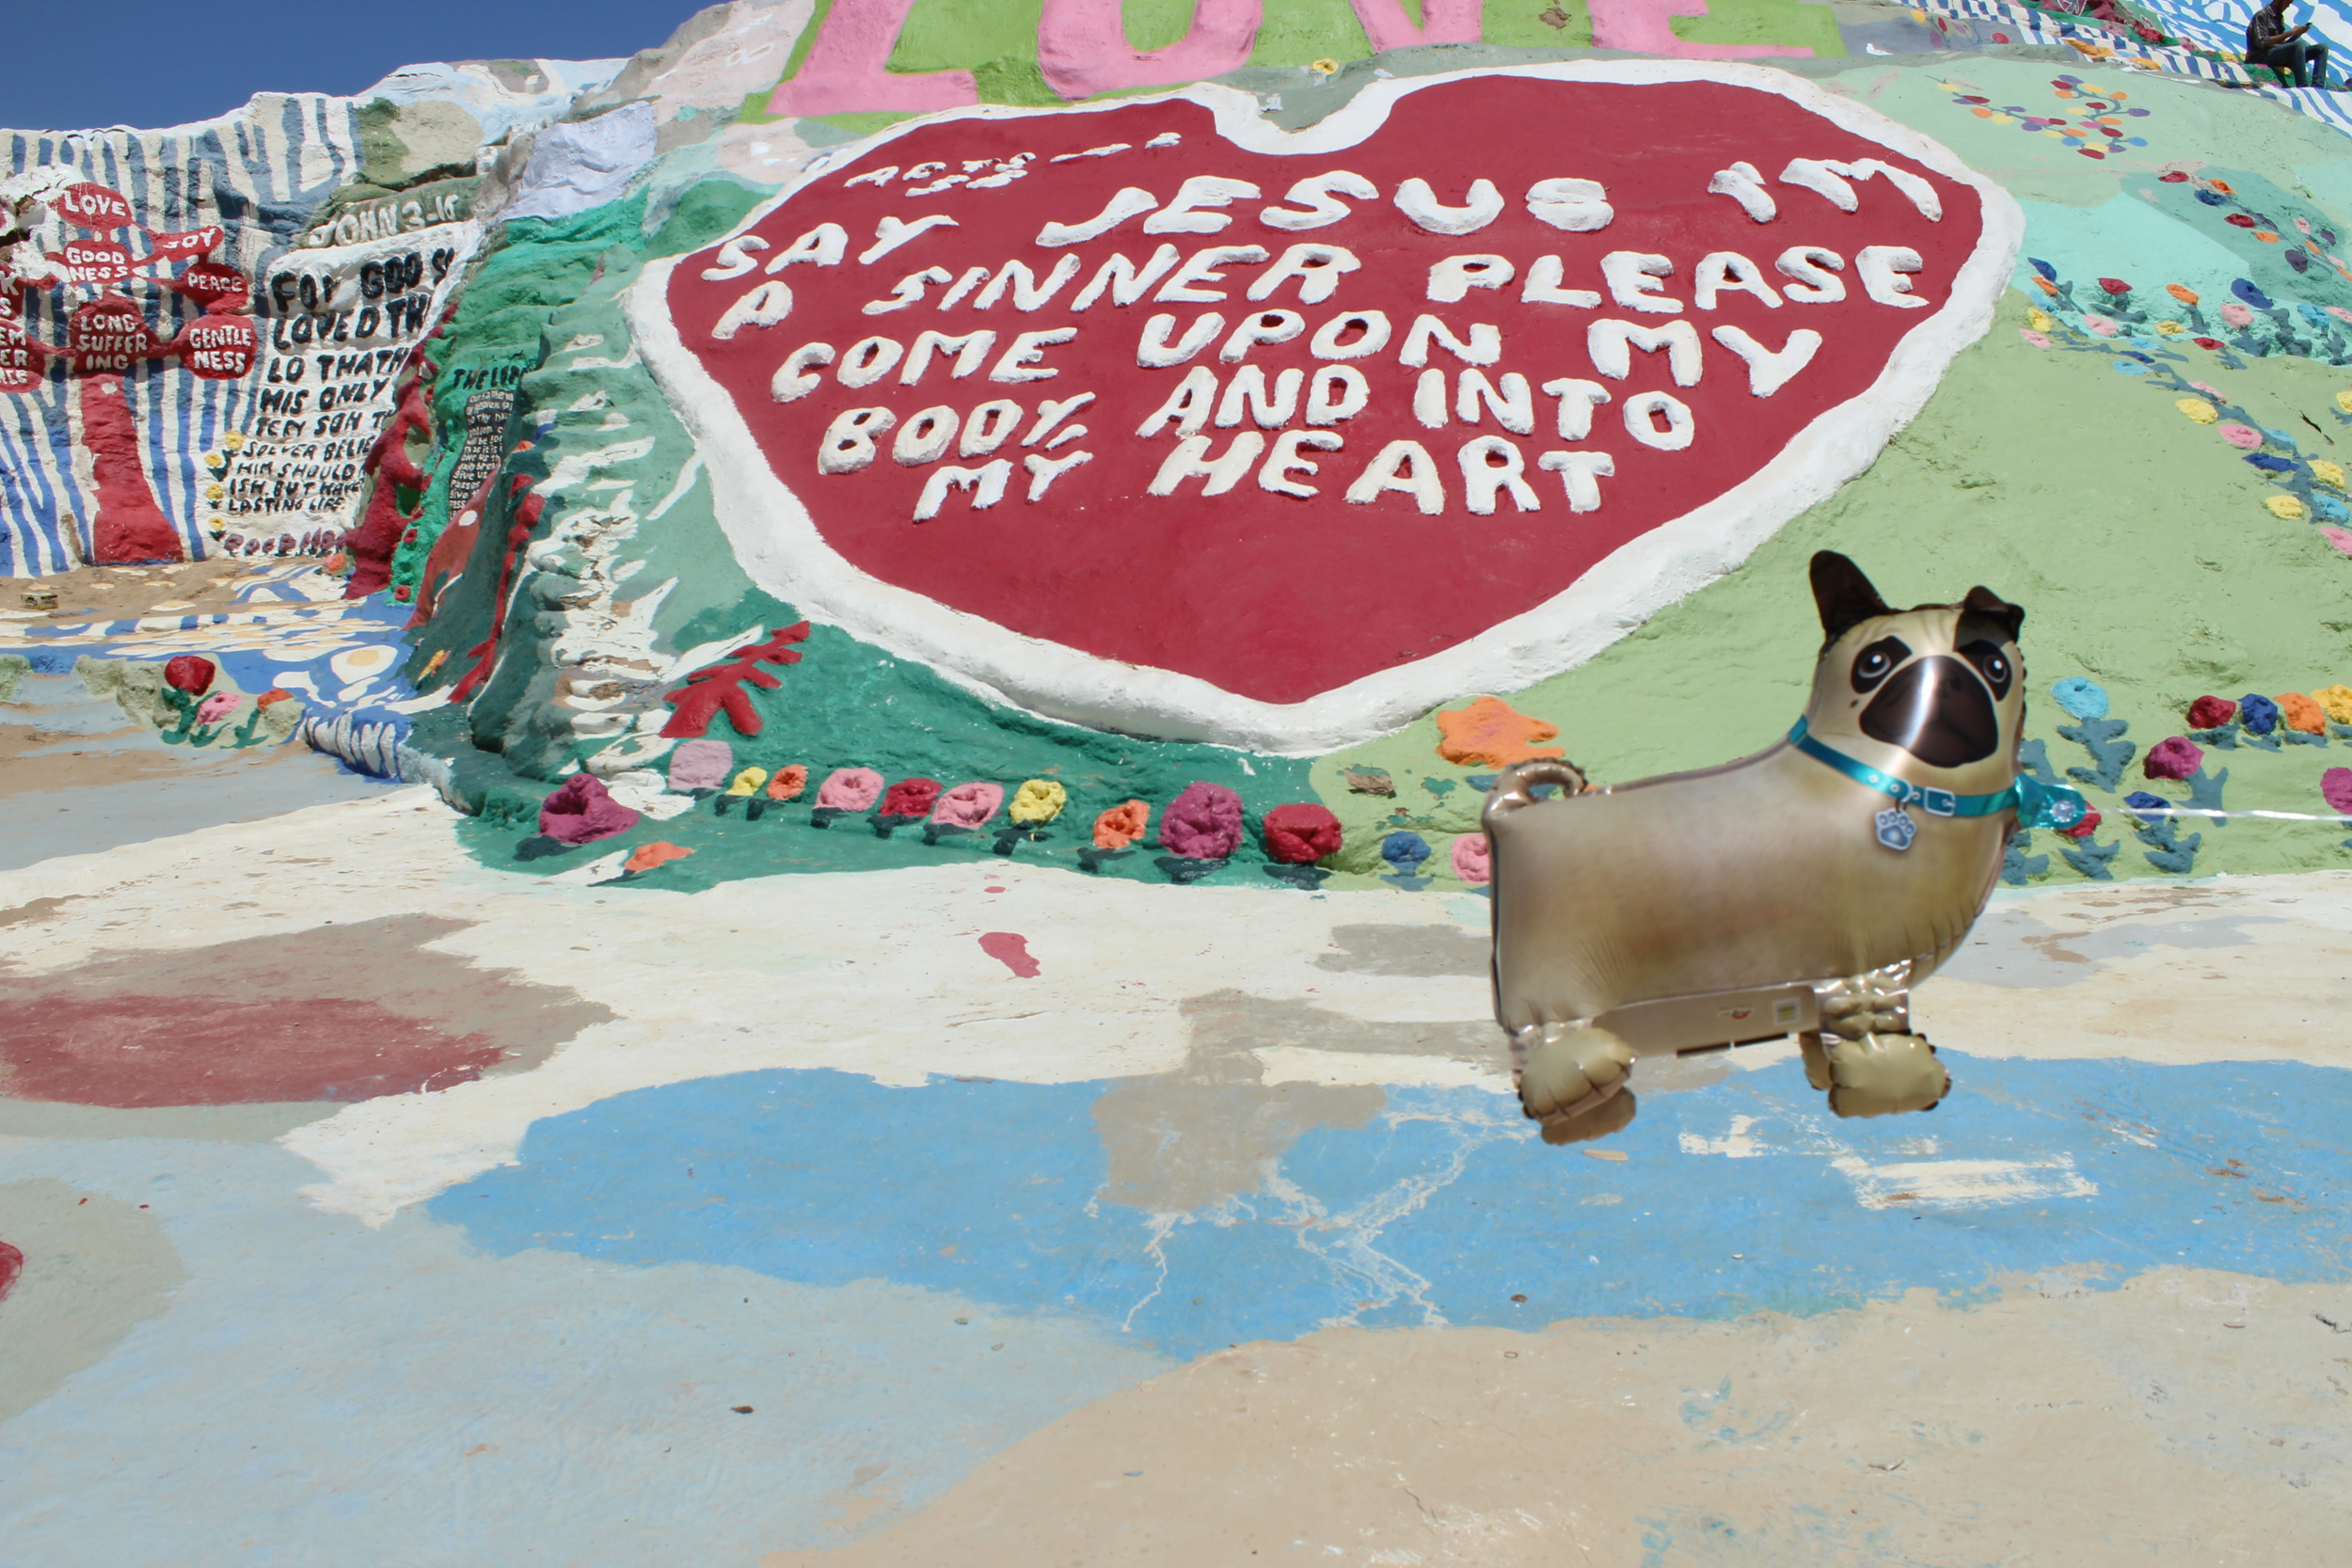 You don't need to own a Dodge Grand Caravan to bring the whole family to Salvation Mountain. Just look how happy Pug-A-Boo is to see the sights!